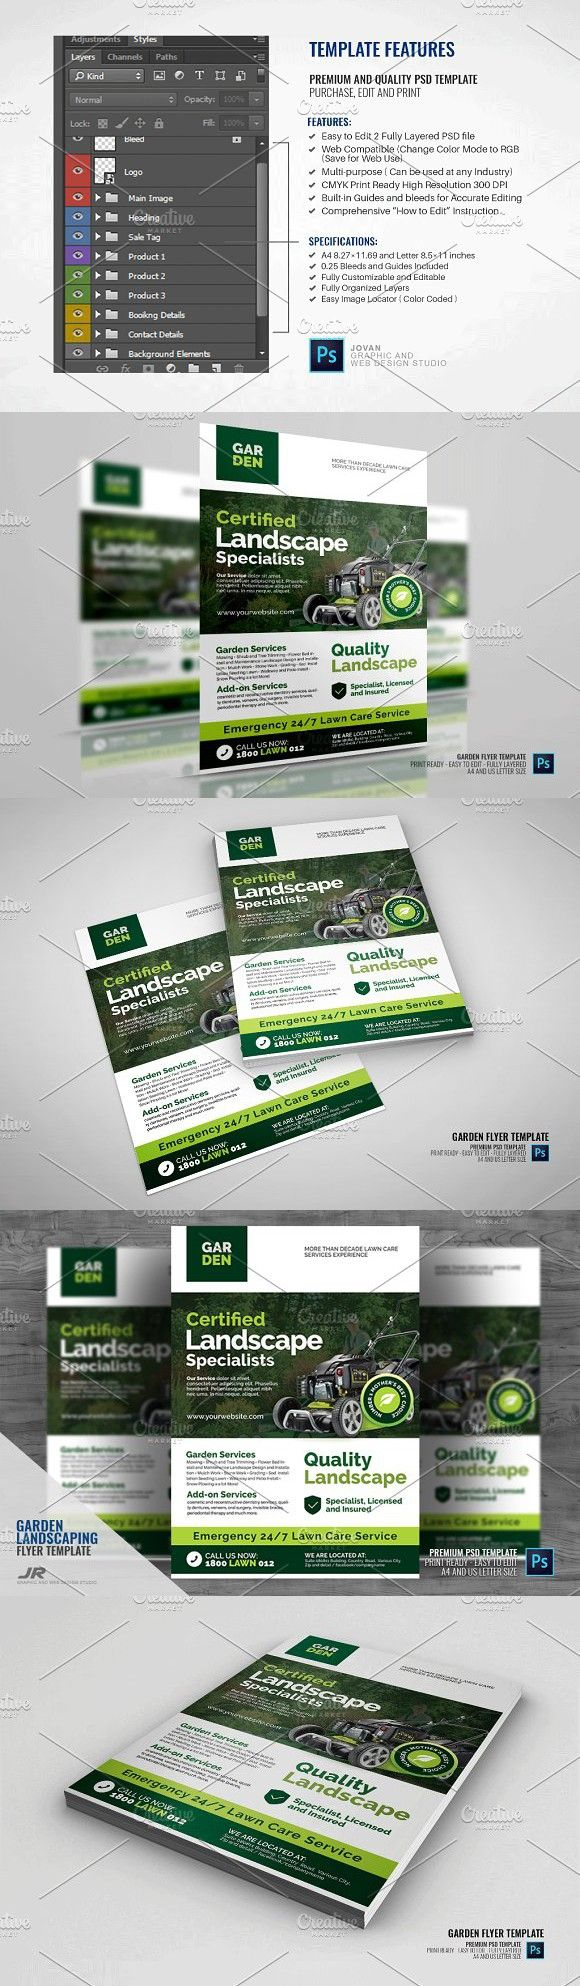 Landscaping and Lawn Mowing Flyer | Pinterest | Lawn and Flyer ...